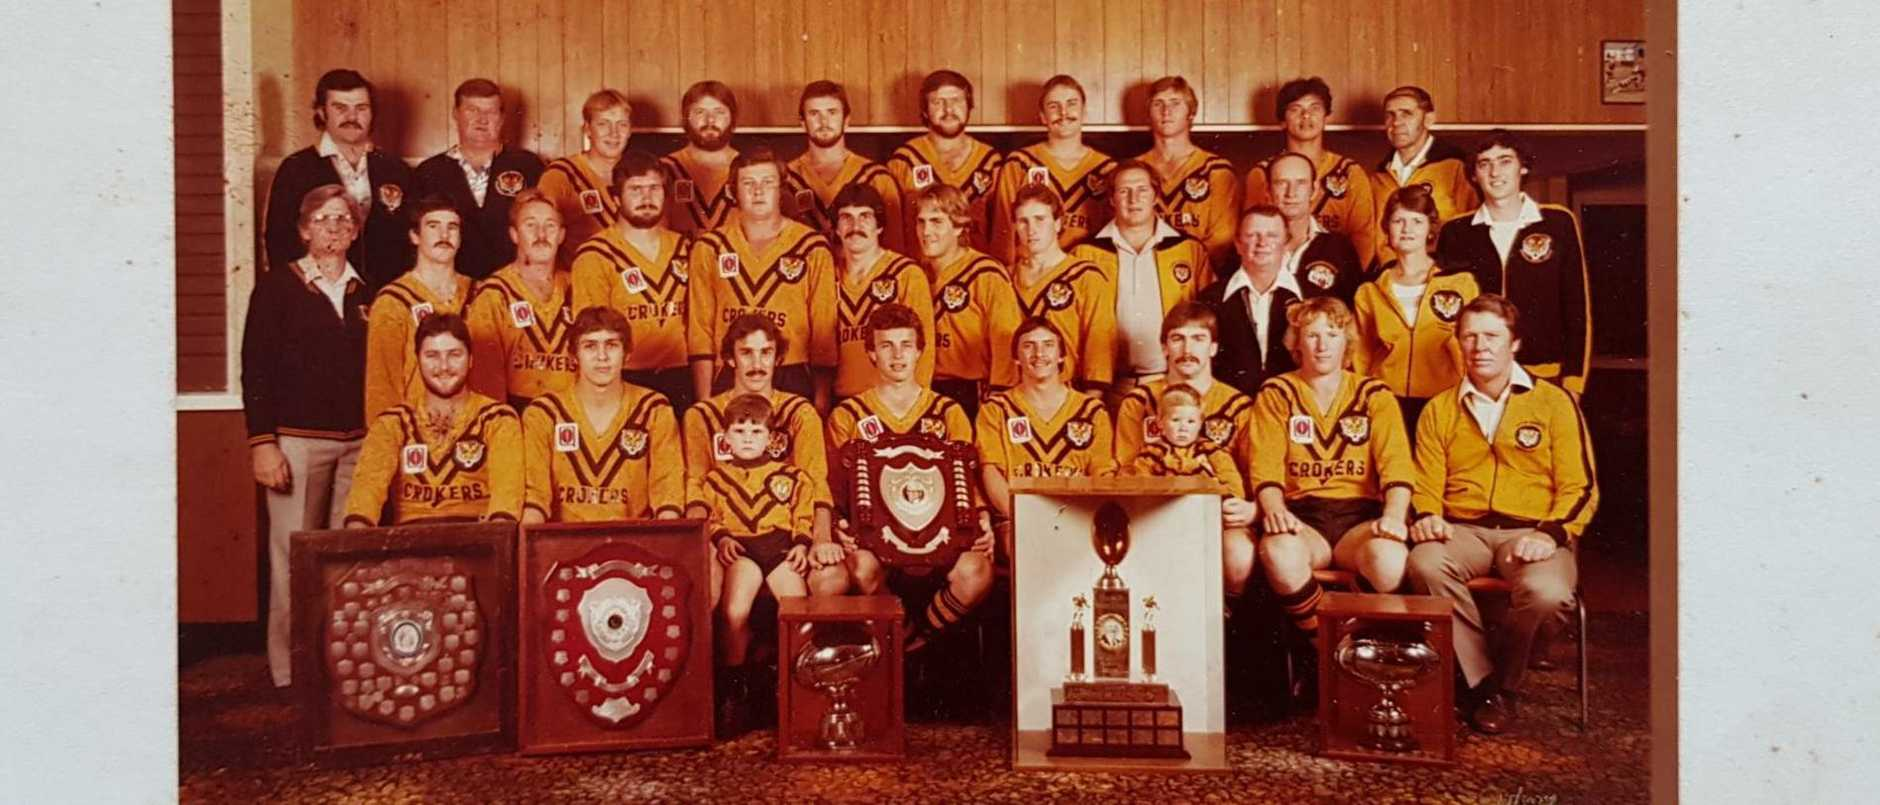 Former president of Wests Tigers Jack Webster (bottom right) with Western Suburbs R.L.C A-Grade premiers of 1982.